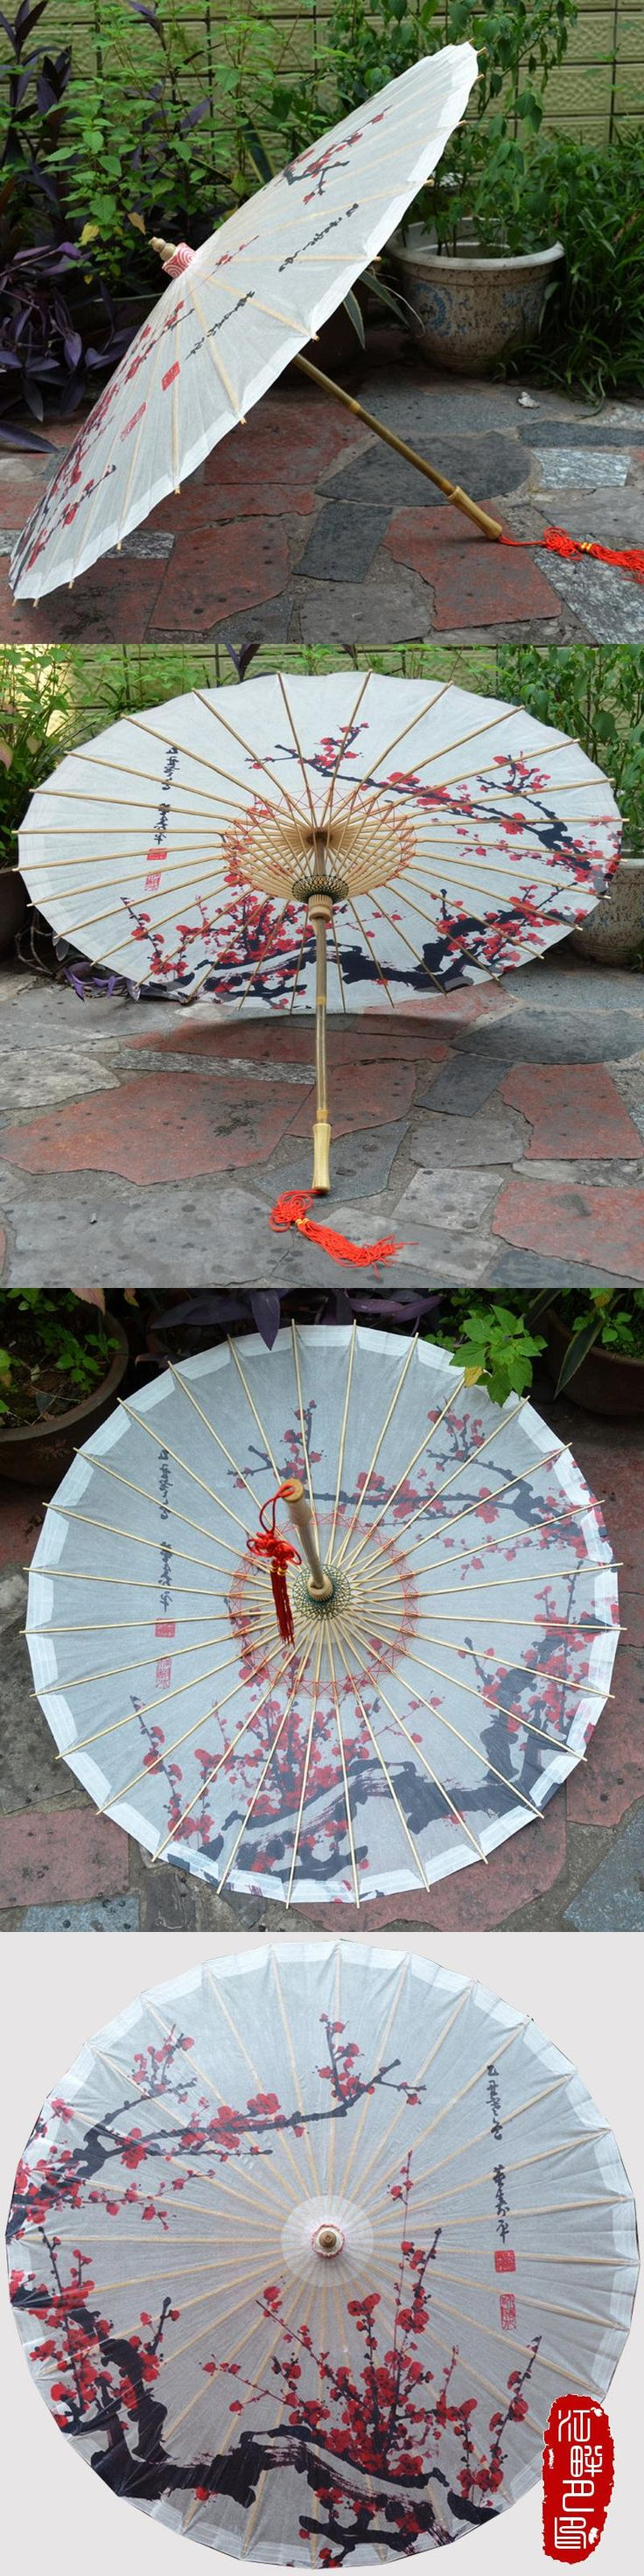 Red Plum Blossom Chinese Handmade Oil Paper Umbrella Sunshade Parasol Decoration Gift Dance Umbrella